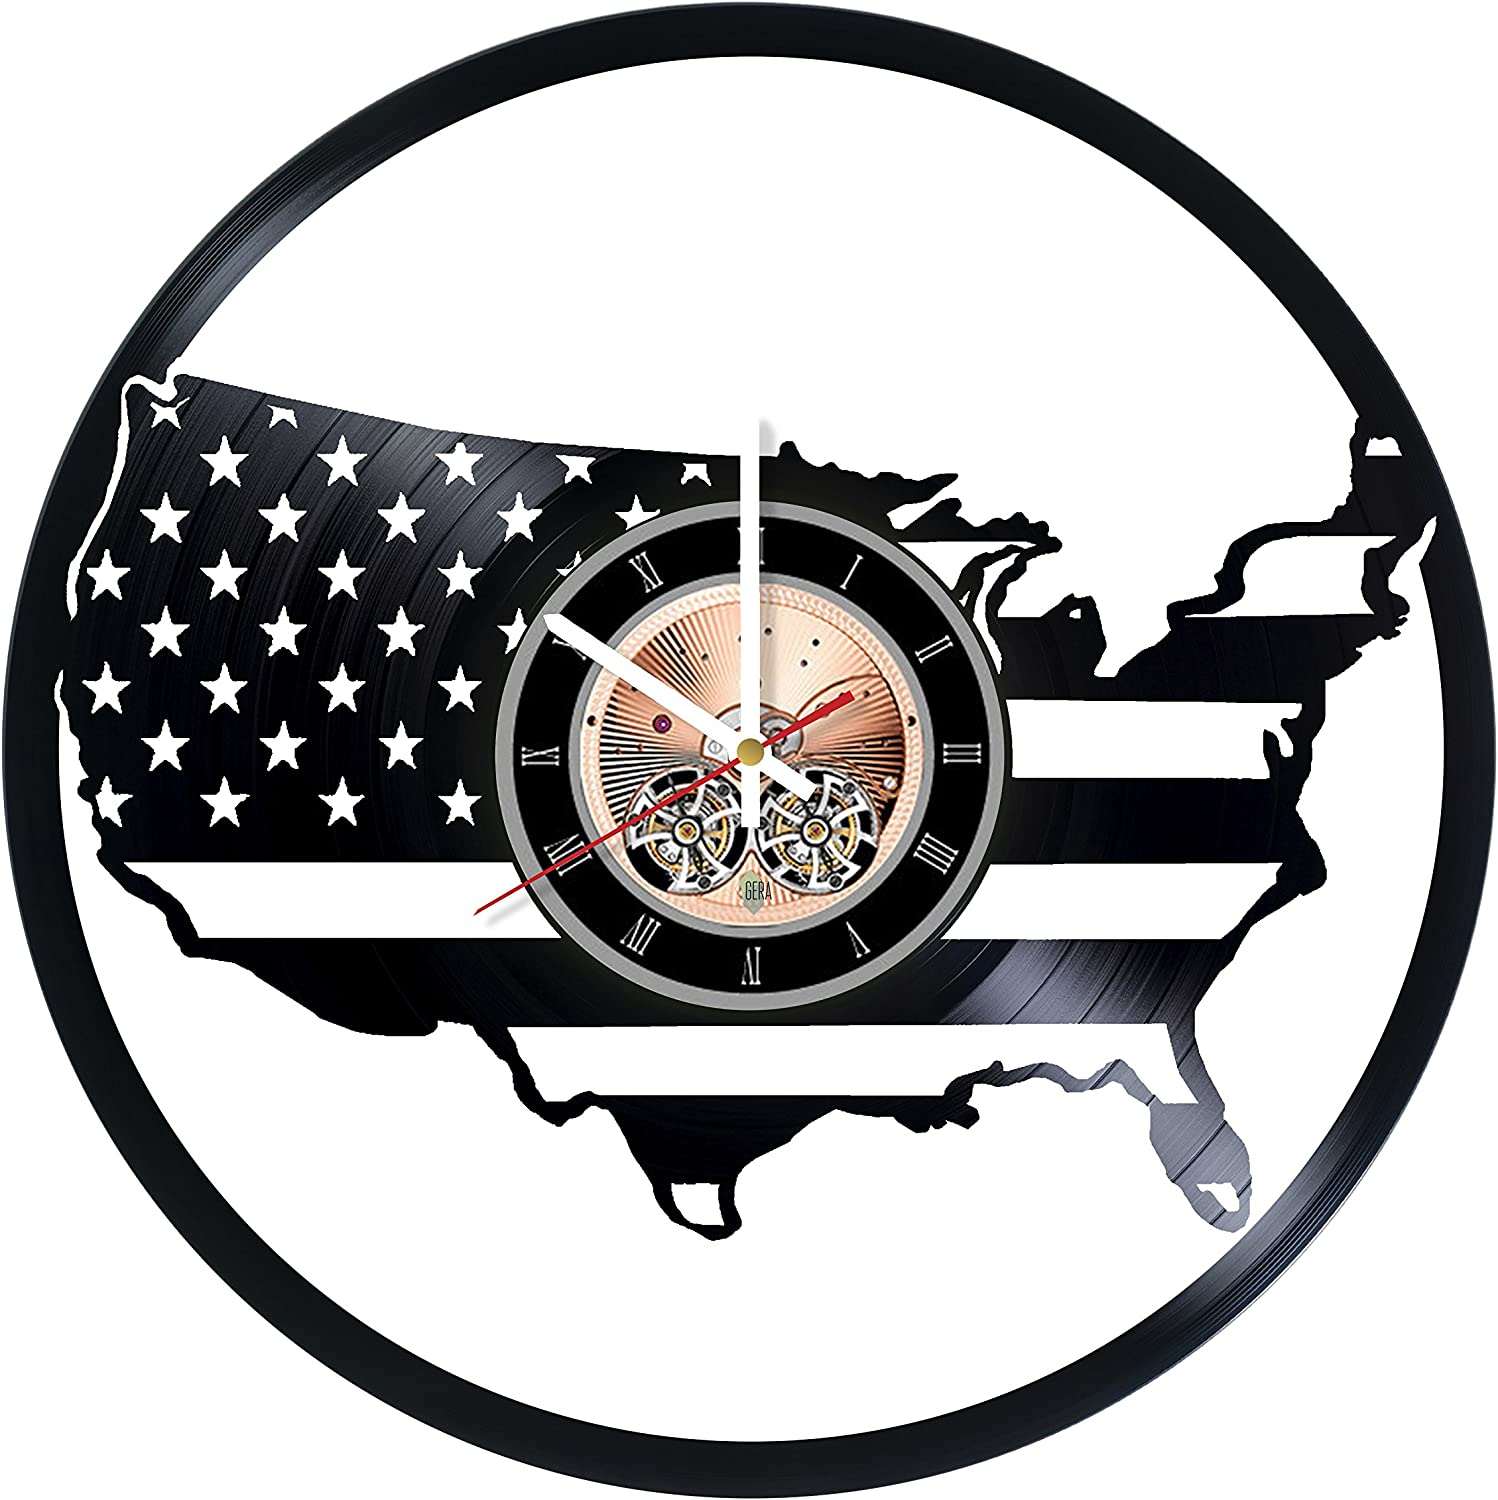 United States Flag Vinyl Record Wall Clock - Home Room or Living Room Wall Decor - Gift Ideas for Men and Women, Friends, Teens – City Unique Art Design